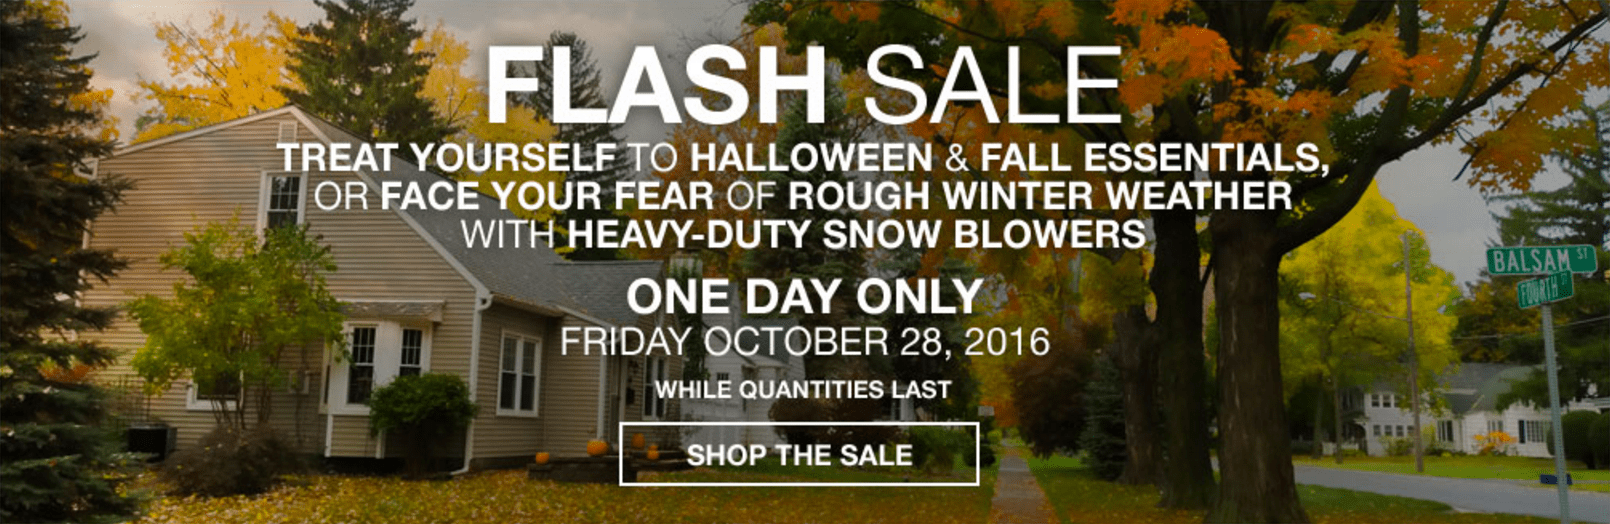 Lowe's Canada Flash Sale: Save 50% On Halloween Decor, Extra 20%% On Select Grills and Outdoor Heat & More Offers